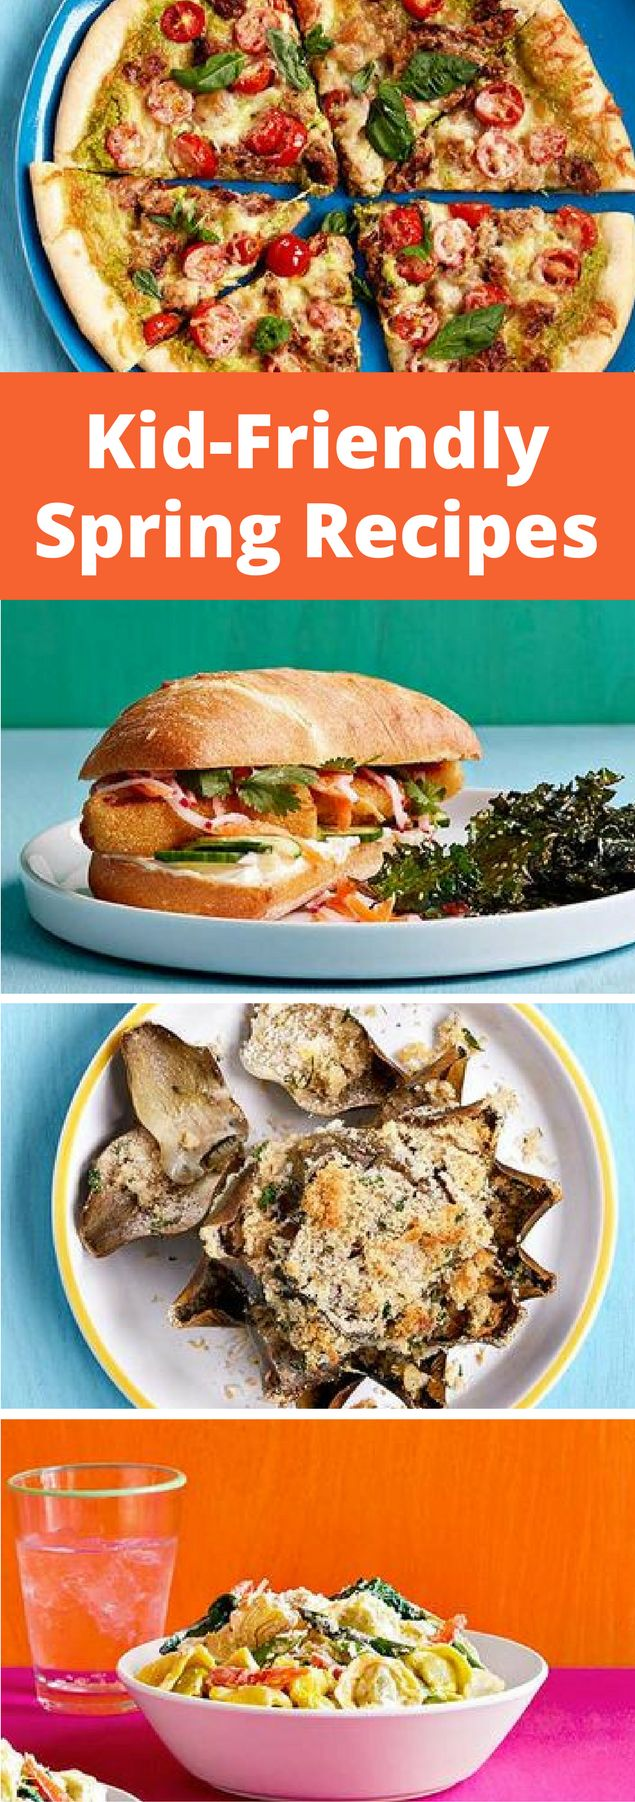 Say hello to spring with kid-friendly recipes that feature the season's finest picks.